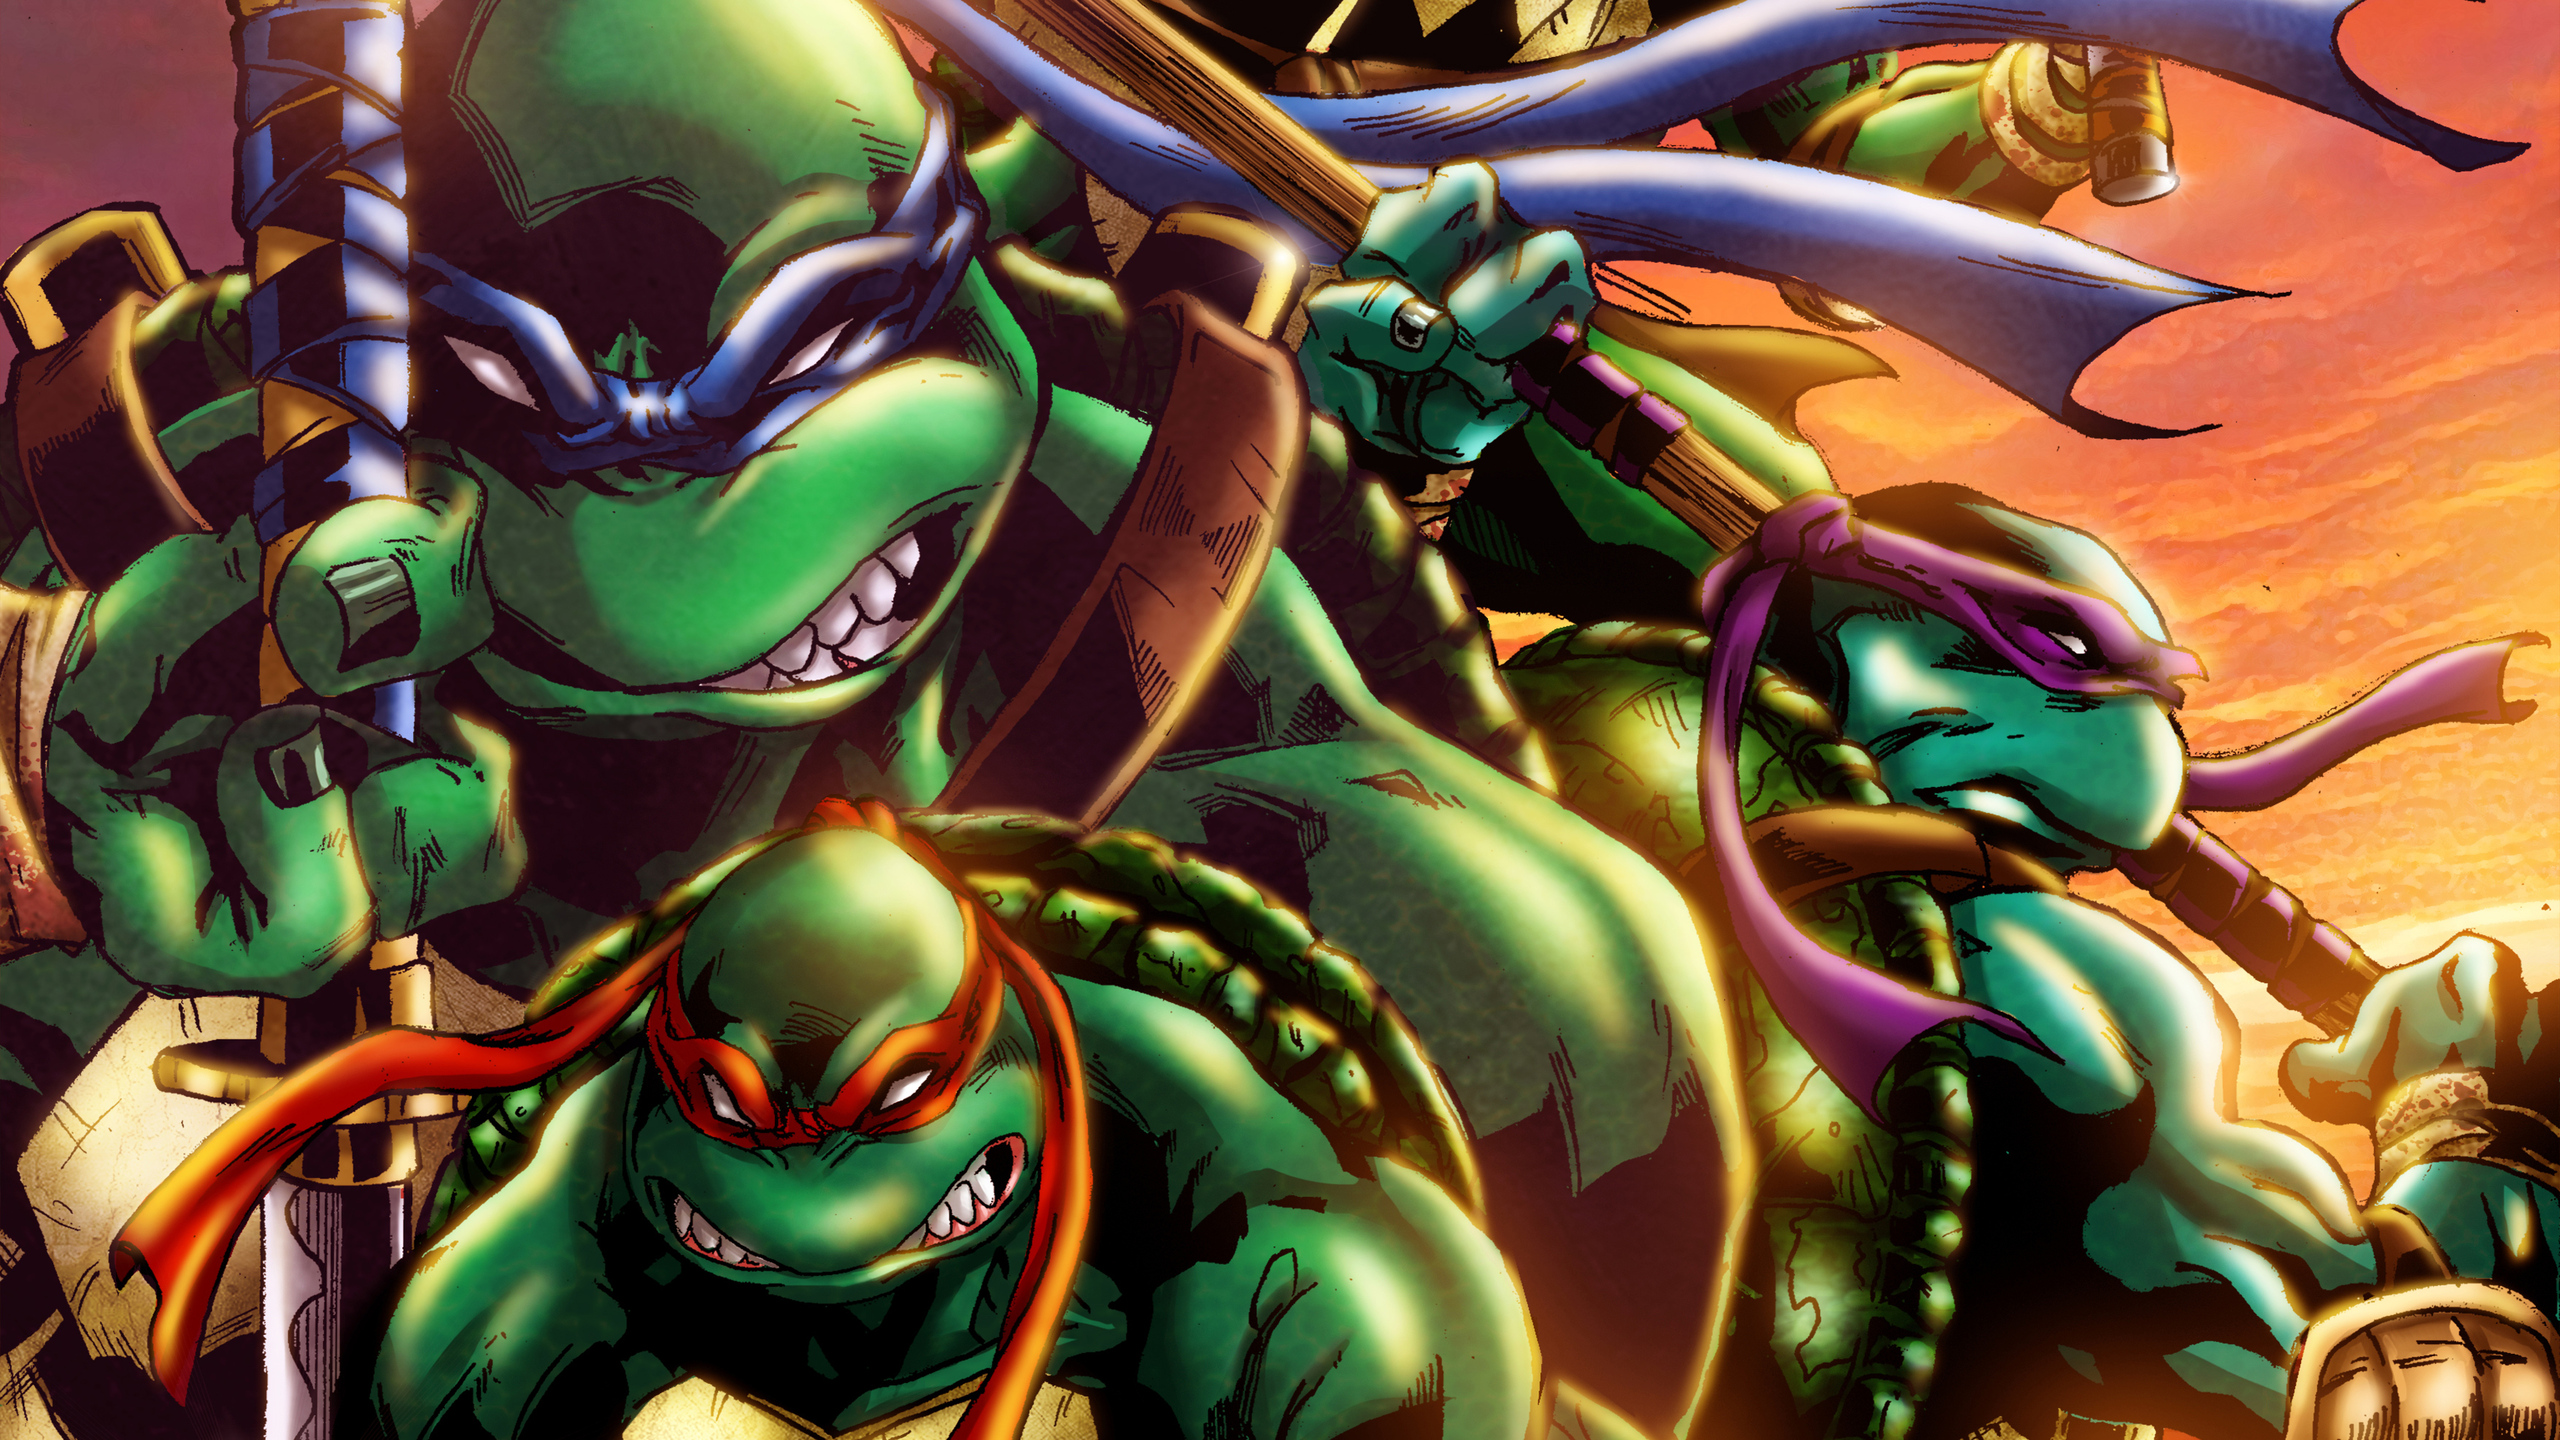 2560x1440 Teenage Mutant Ninja Turtles Art 1440p Resolution Hd 4k